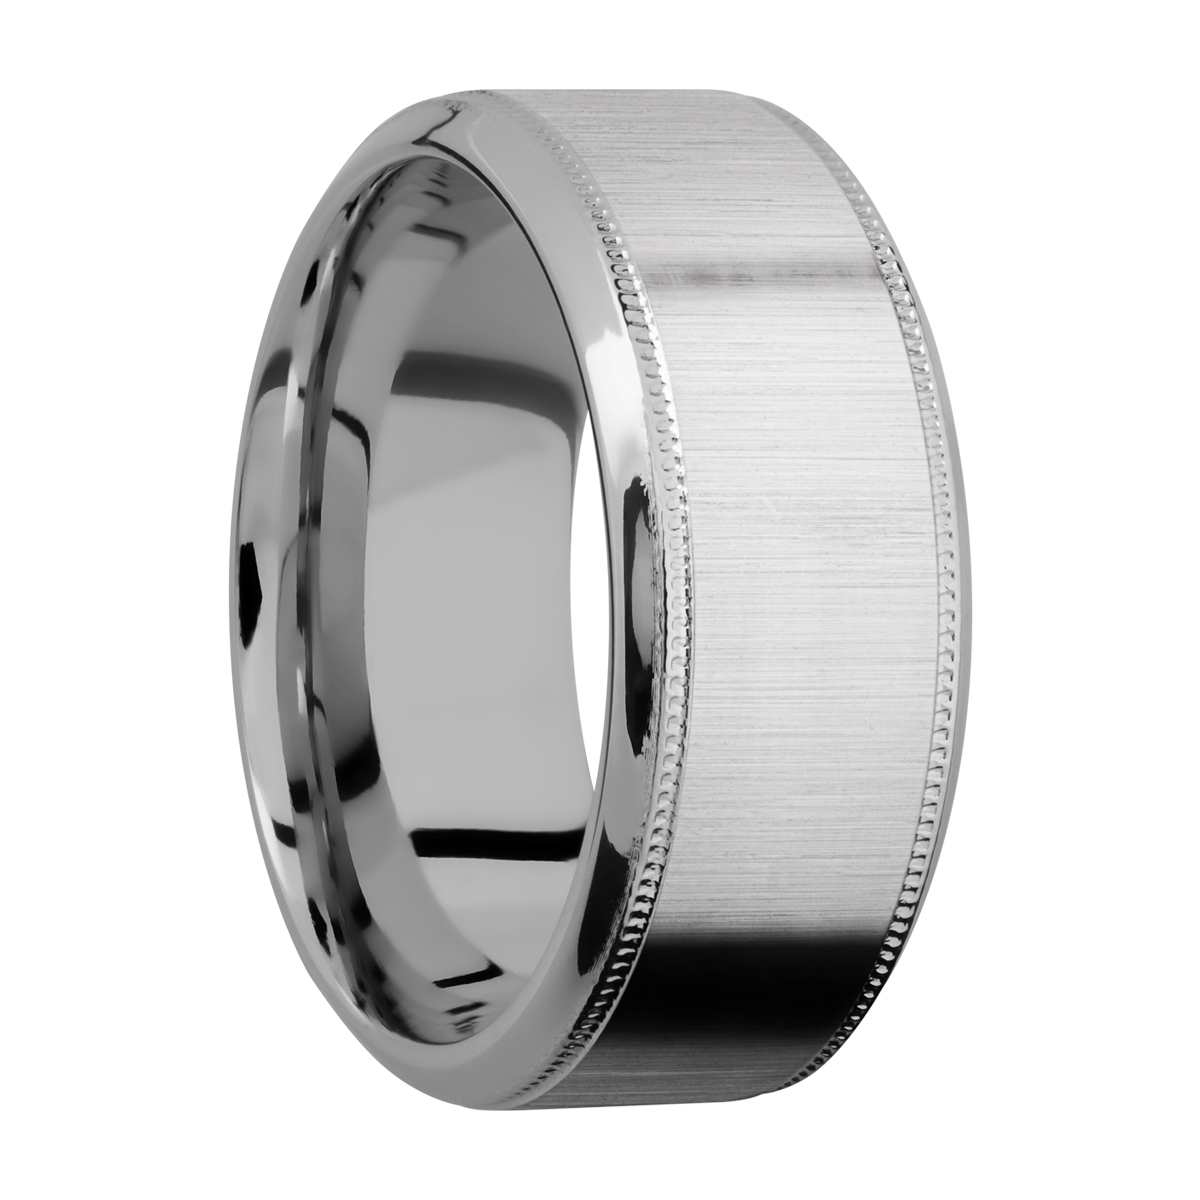 Lashbrook 9HB2UMIL Titanium Wedding Ring or Band Alternative View 1